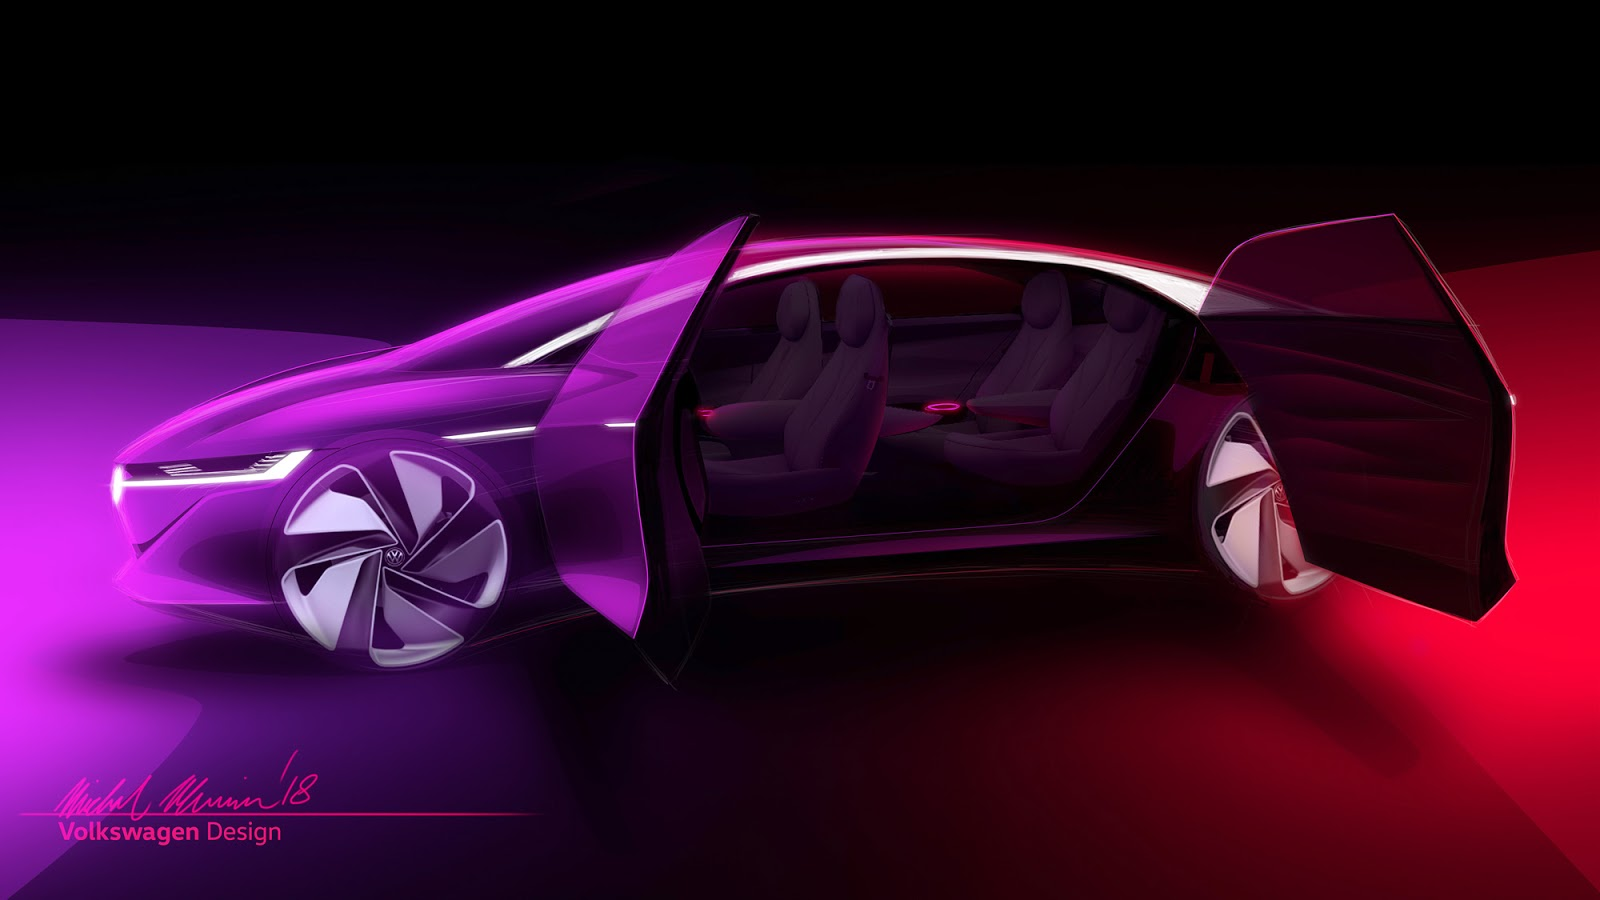 VW ID Vizzion sketch by Michal Uhrin with open doors